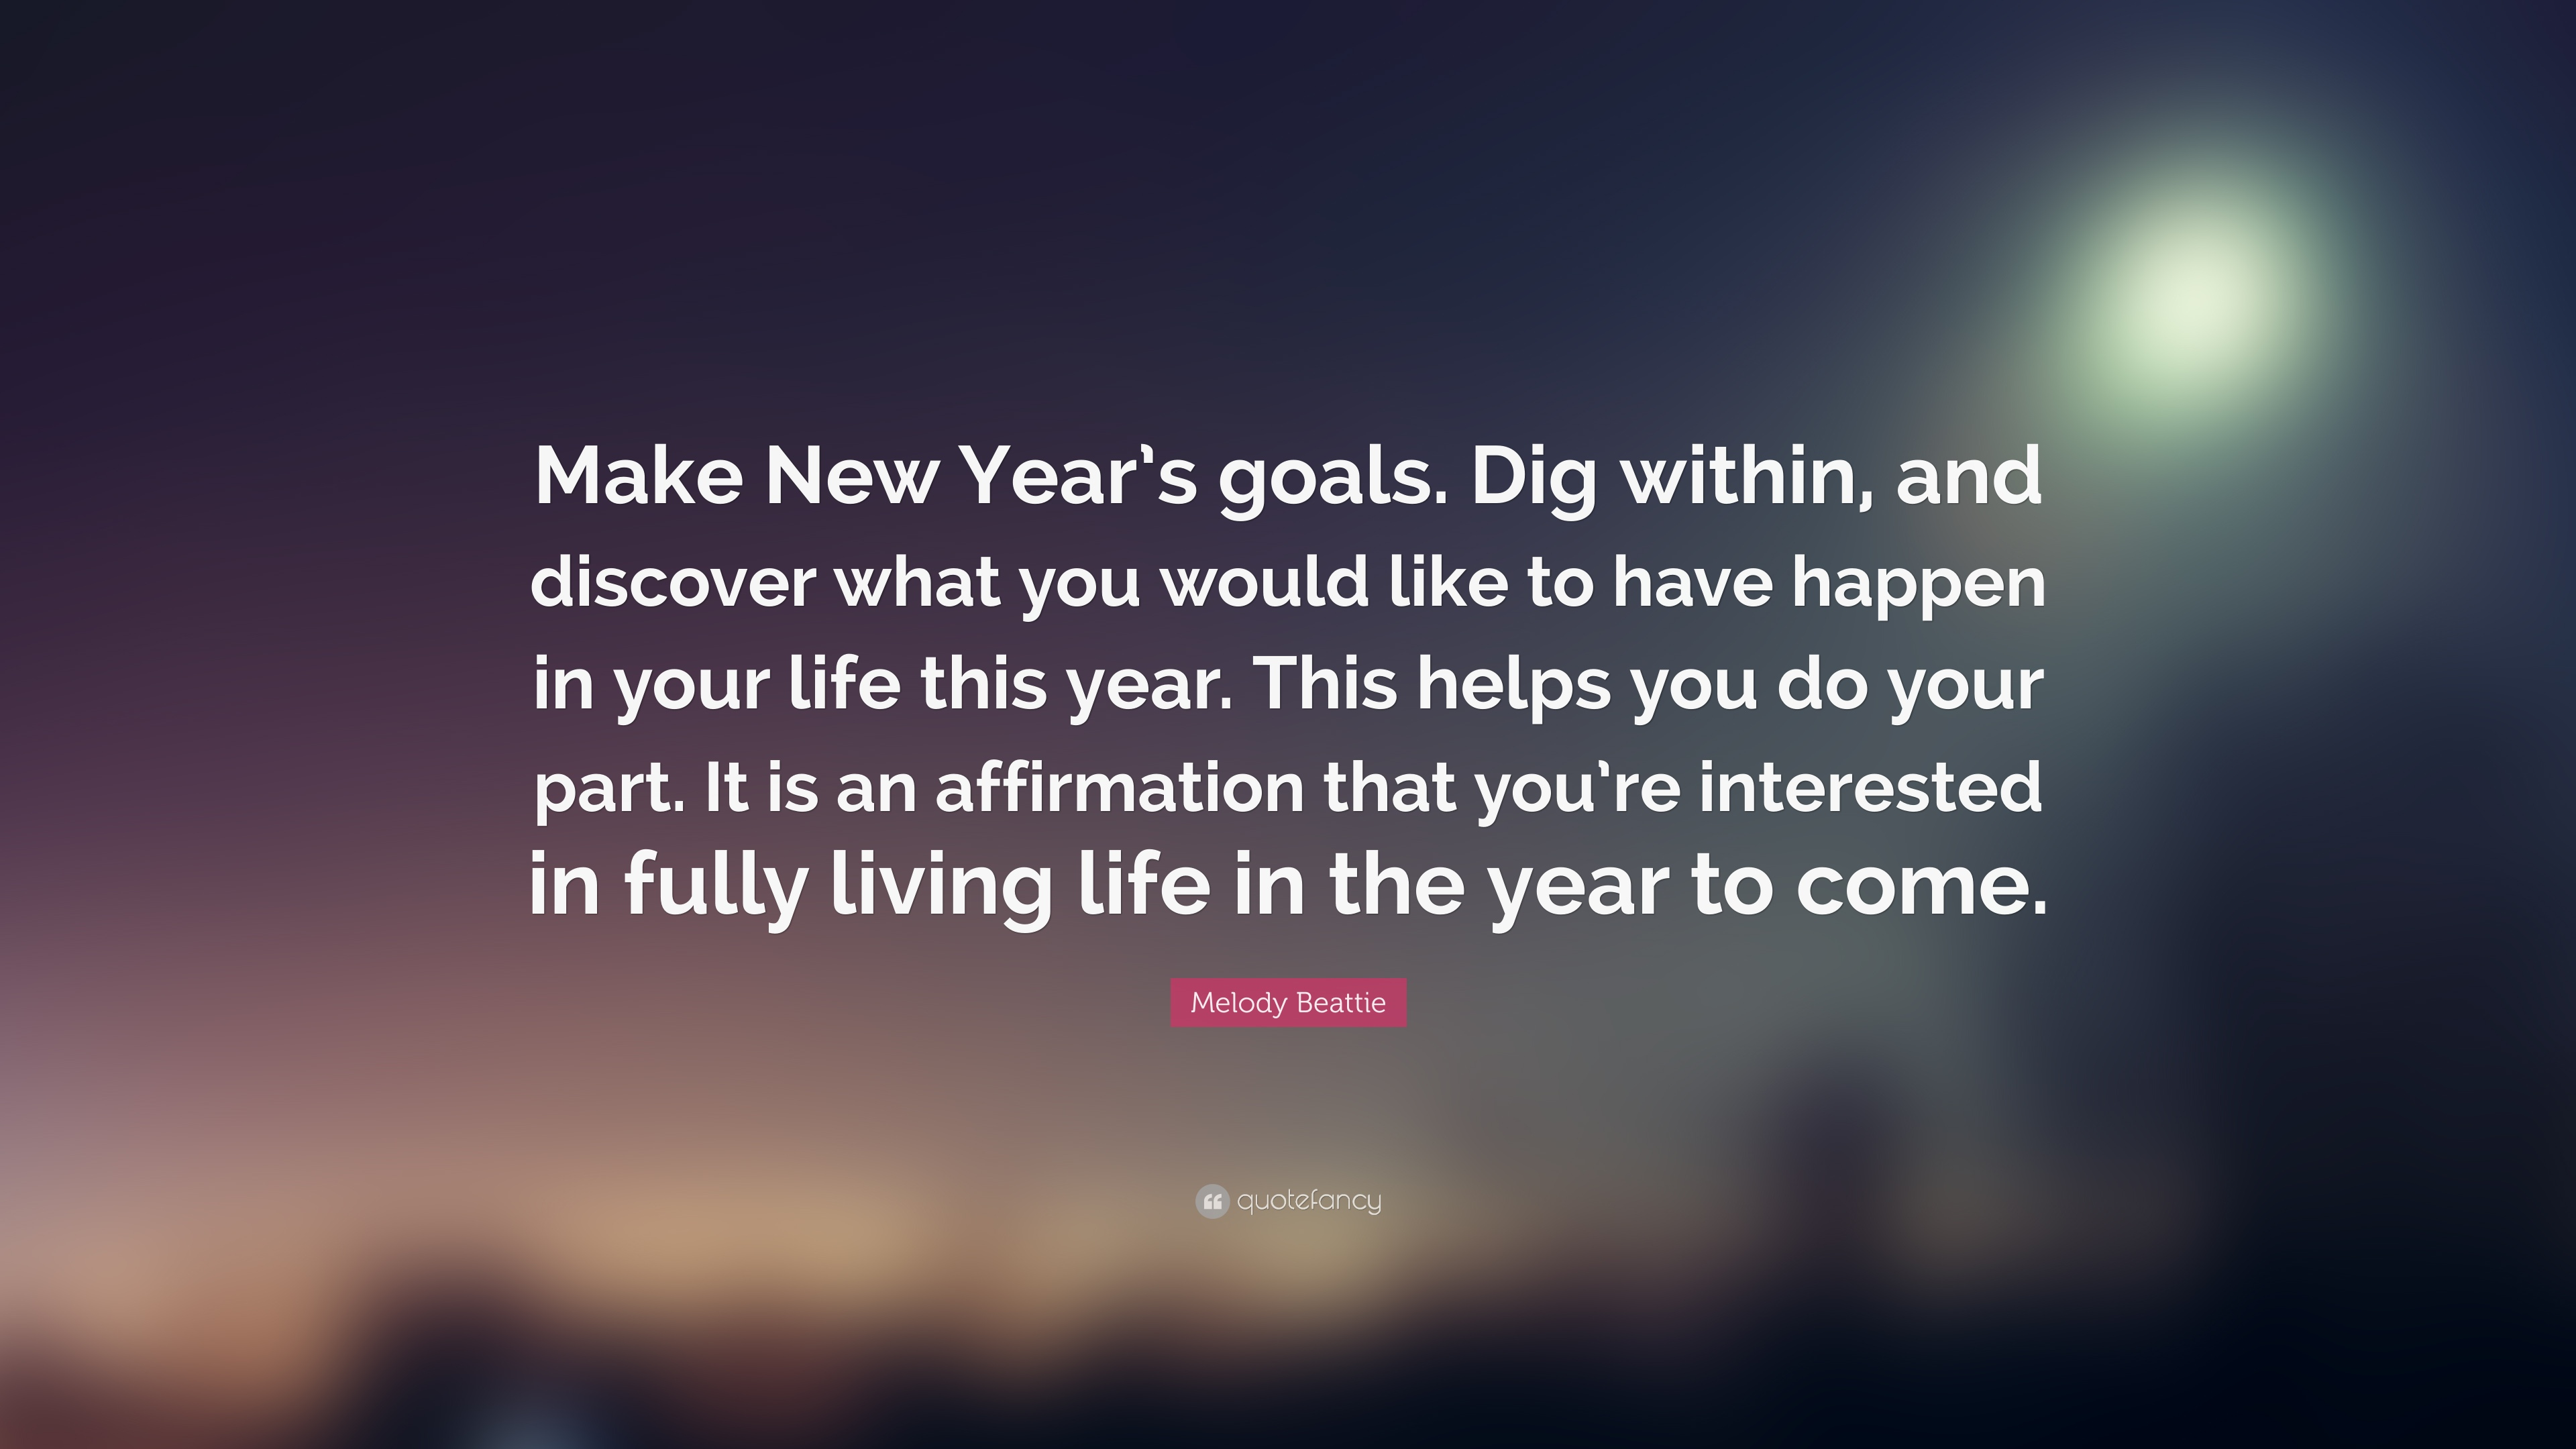 new year quotes 40 wallpapers quotefancy new year quotes 40 wallpapers